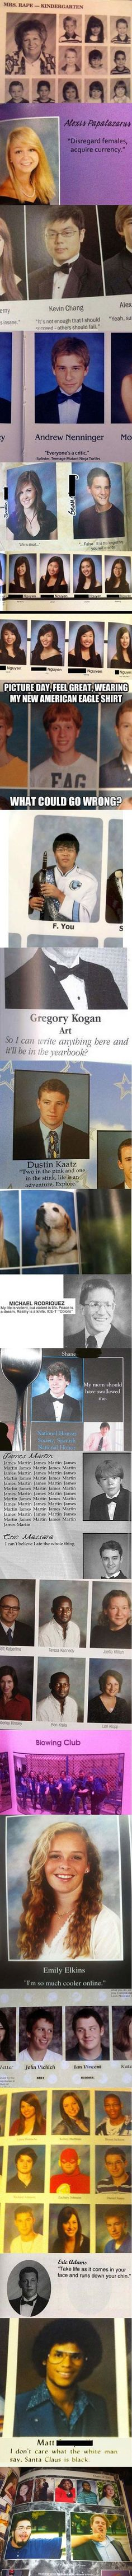 Best Yearbook Moments… #lol #haha #funny